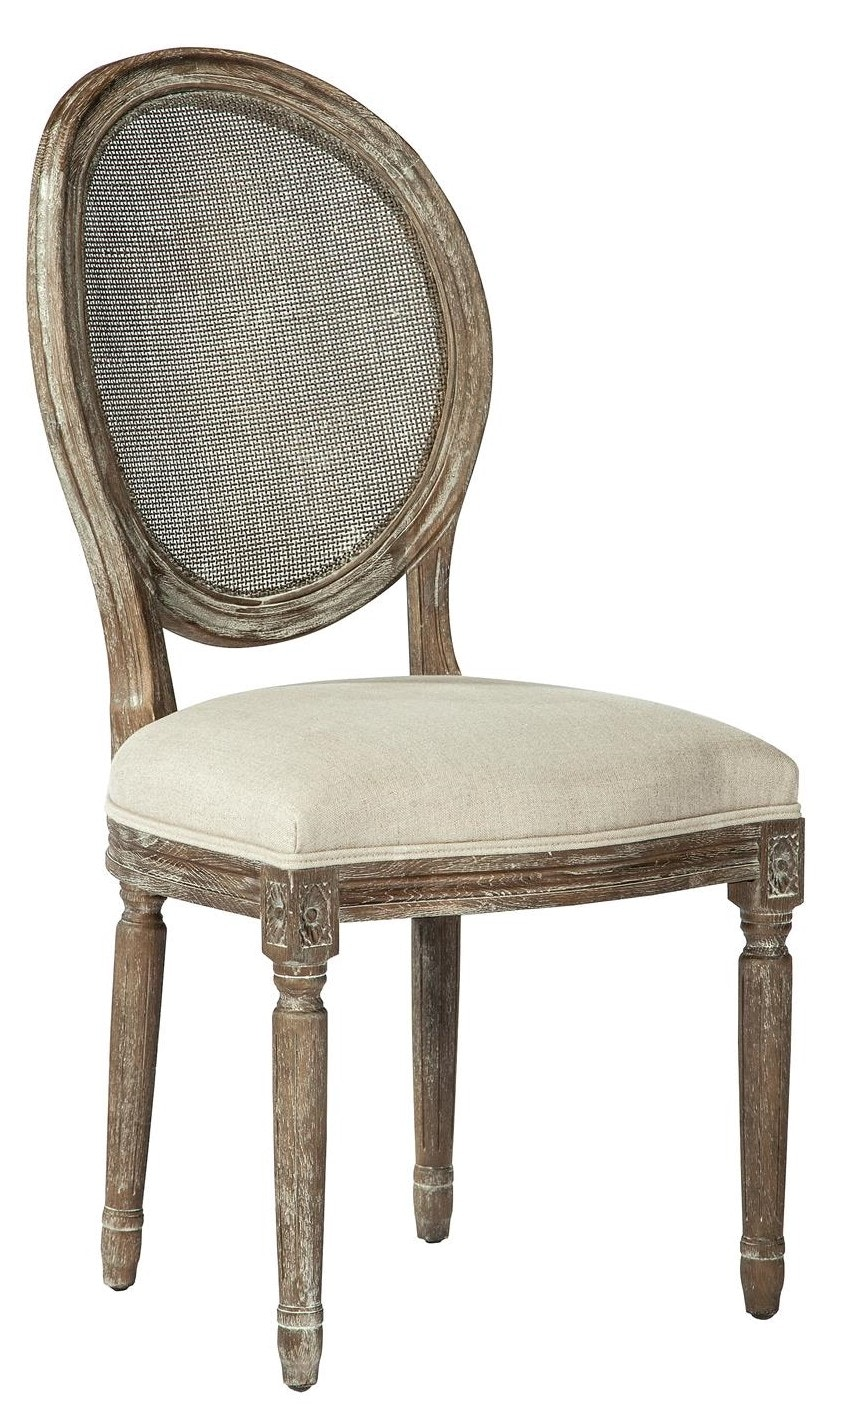 Furniture Classics Renton Side Chair 70290W